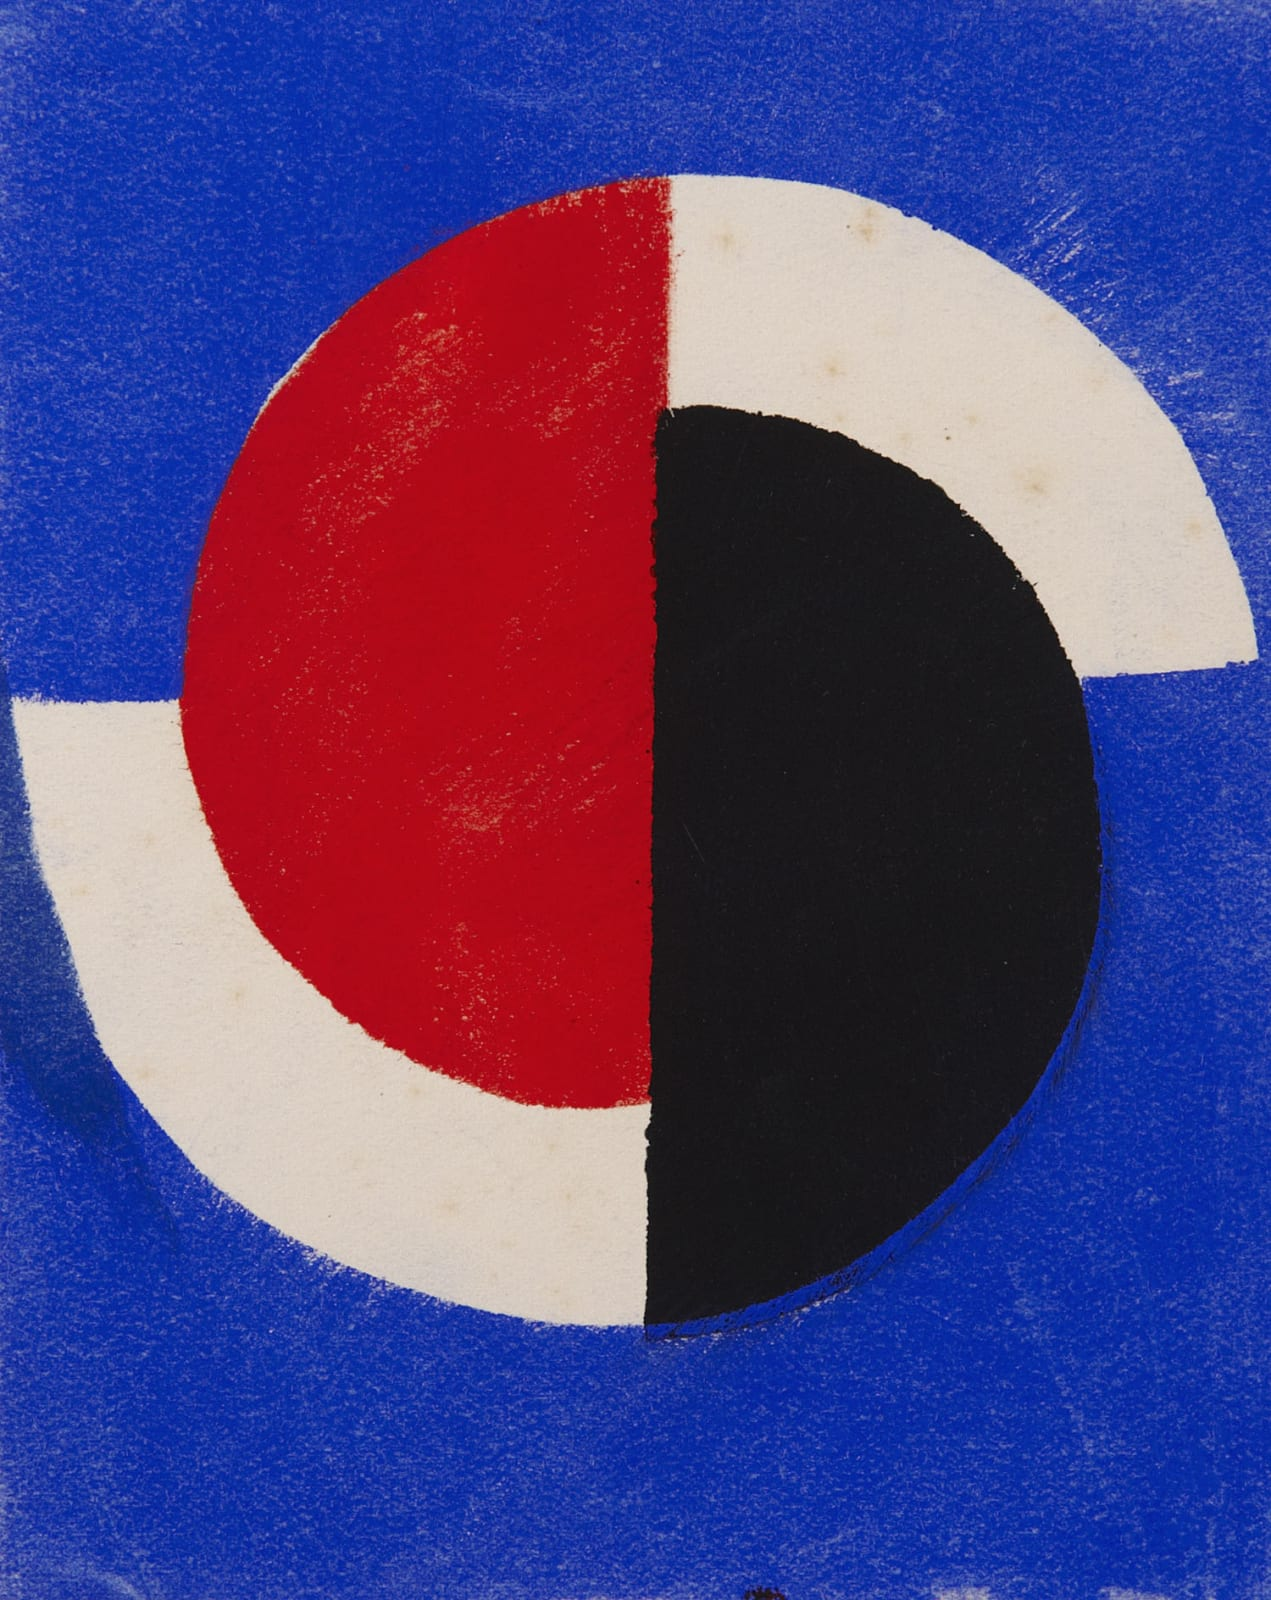 Greeting Card for Galerie Bing, Paris by Sonia Delaunay (1885-1979), 1964. Poster paint on paper.